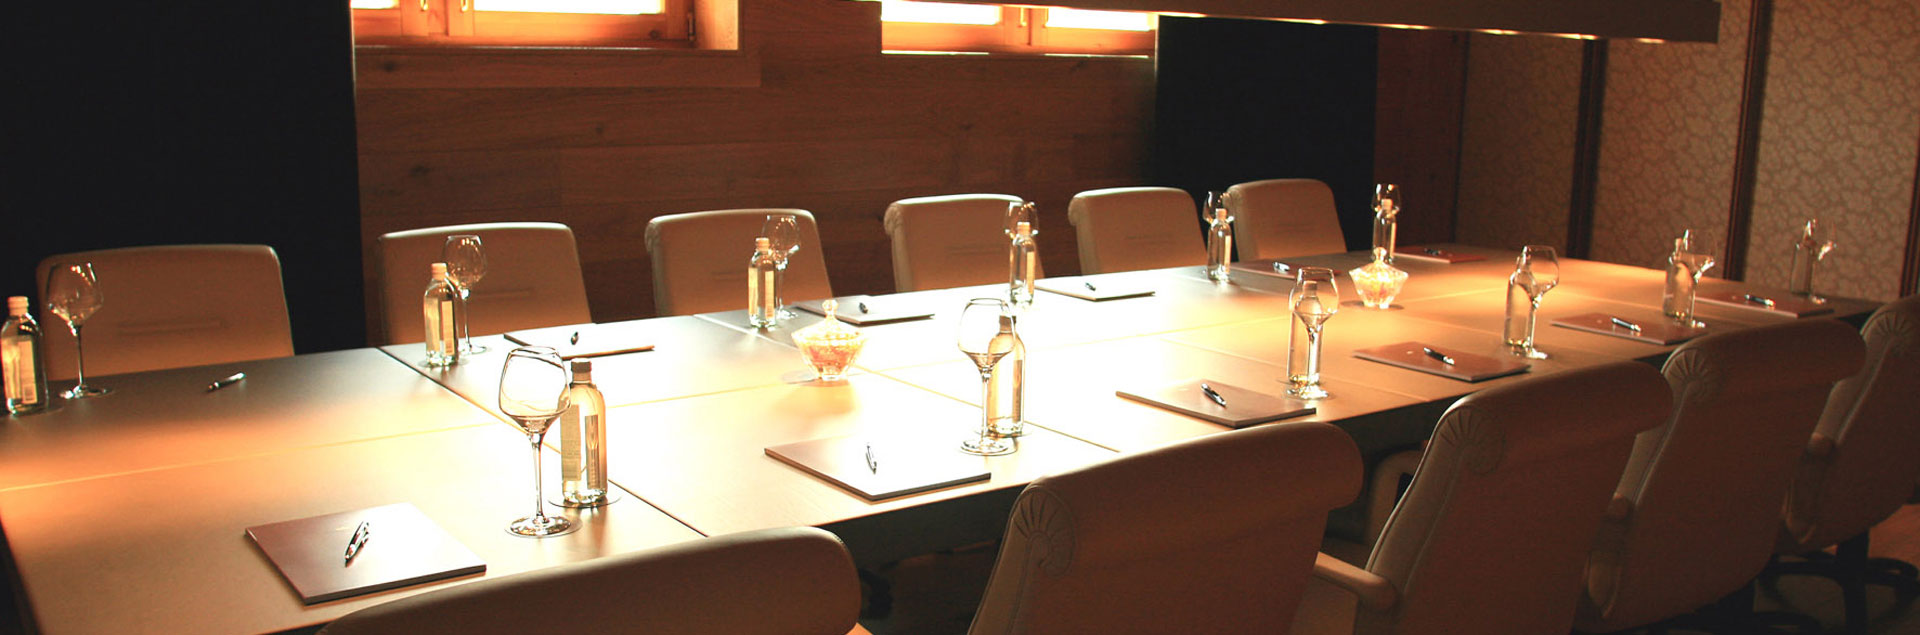 Hotels with company meeting rooms